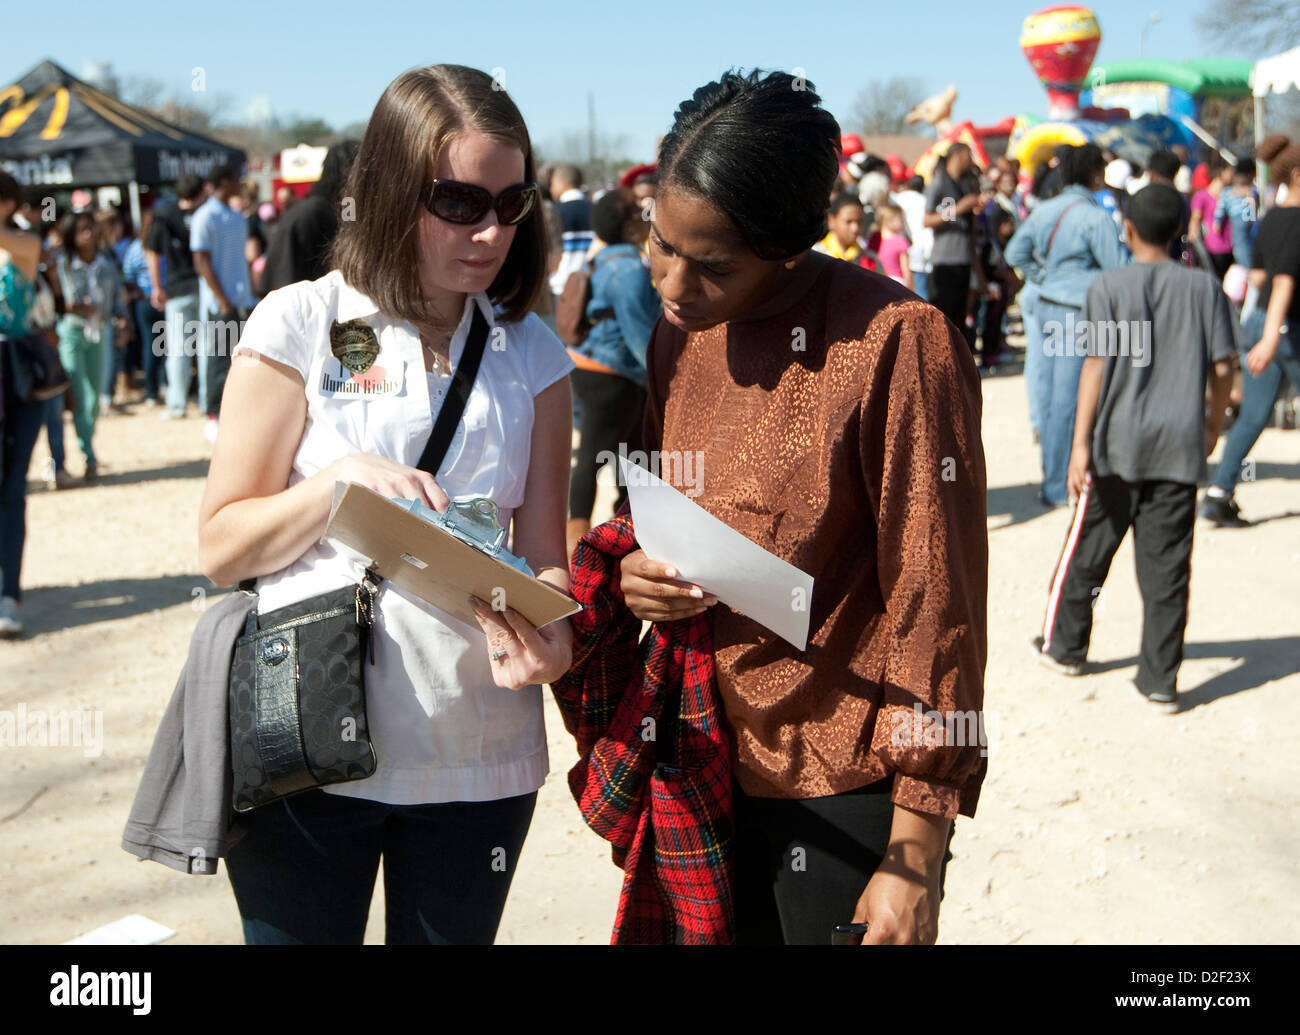 January 21st, 2013: White woman asks African-American to sign petition in favor of human rights at an MLK Jr. outdoor - Stock Image